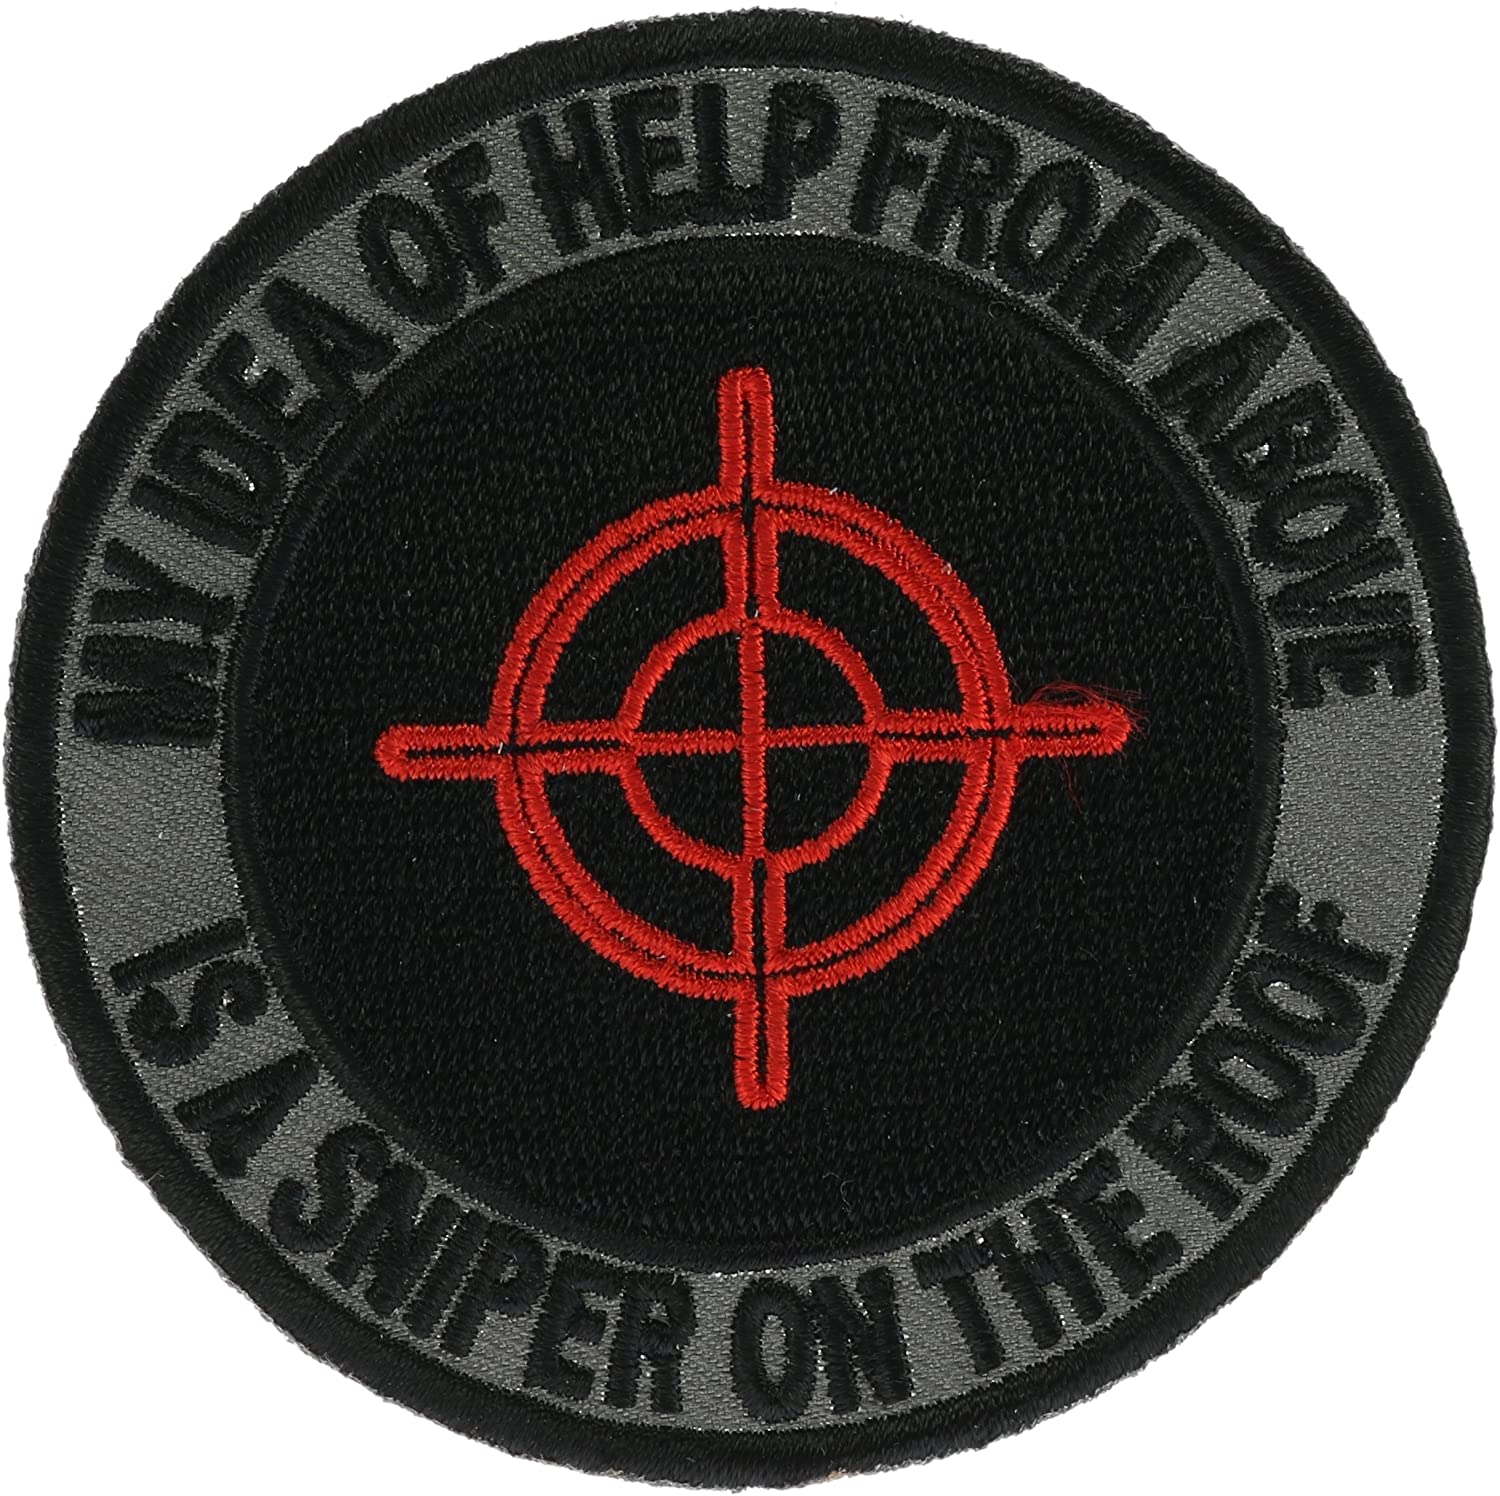 My Idea of Help From Above. 3 inch Patch IvanP3972